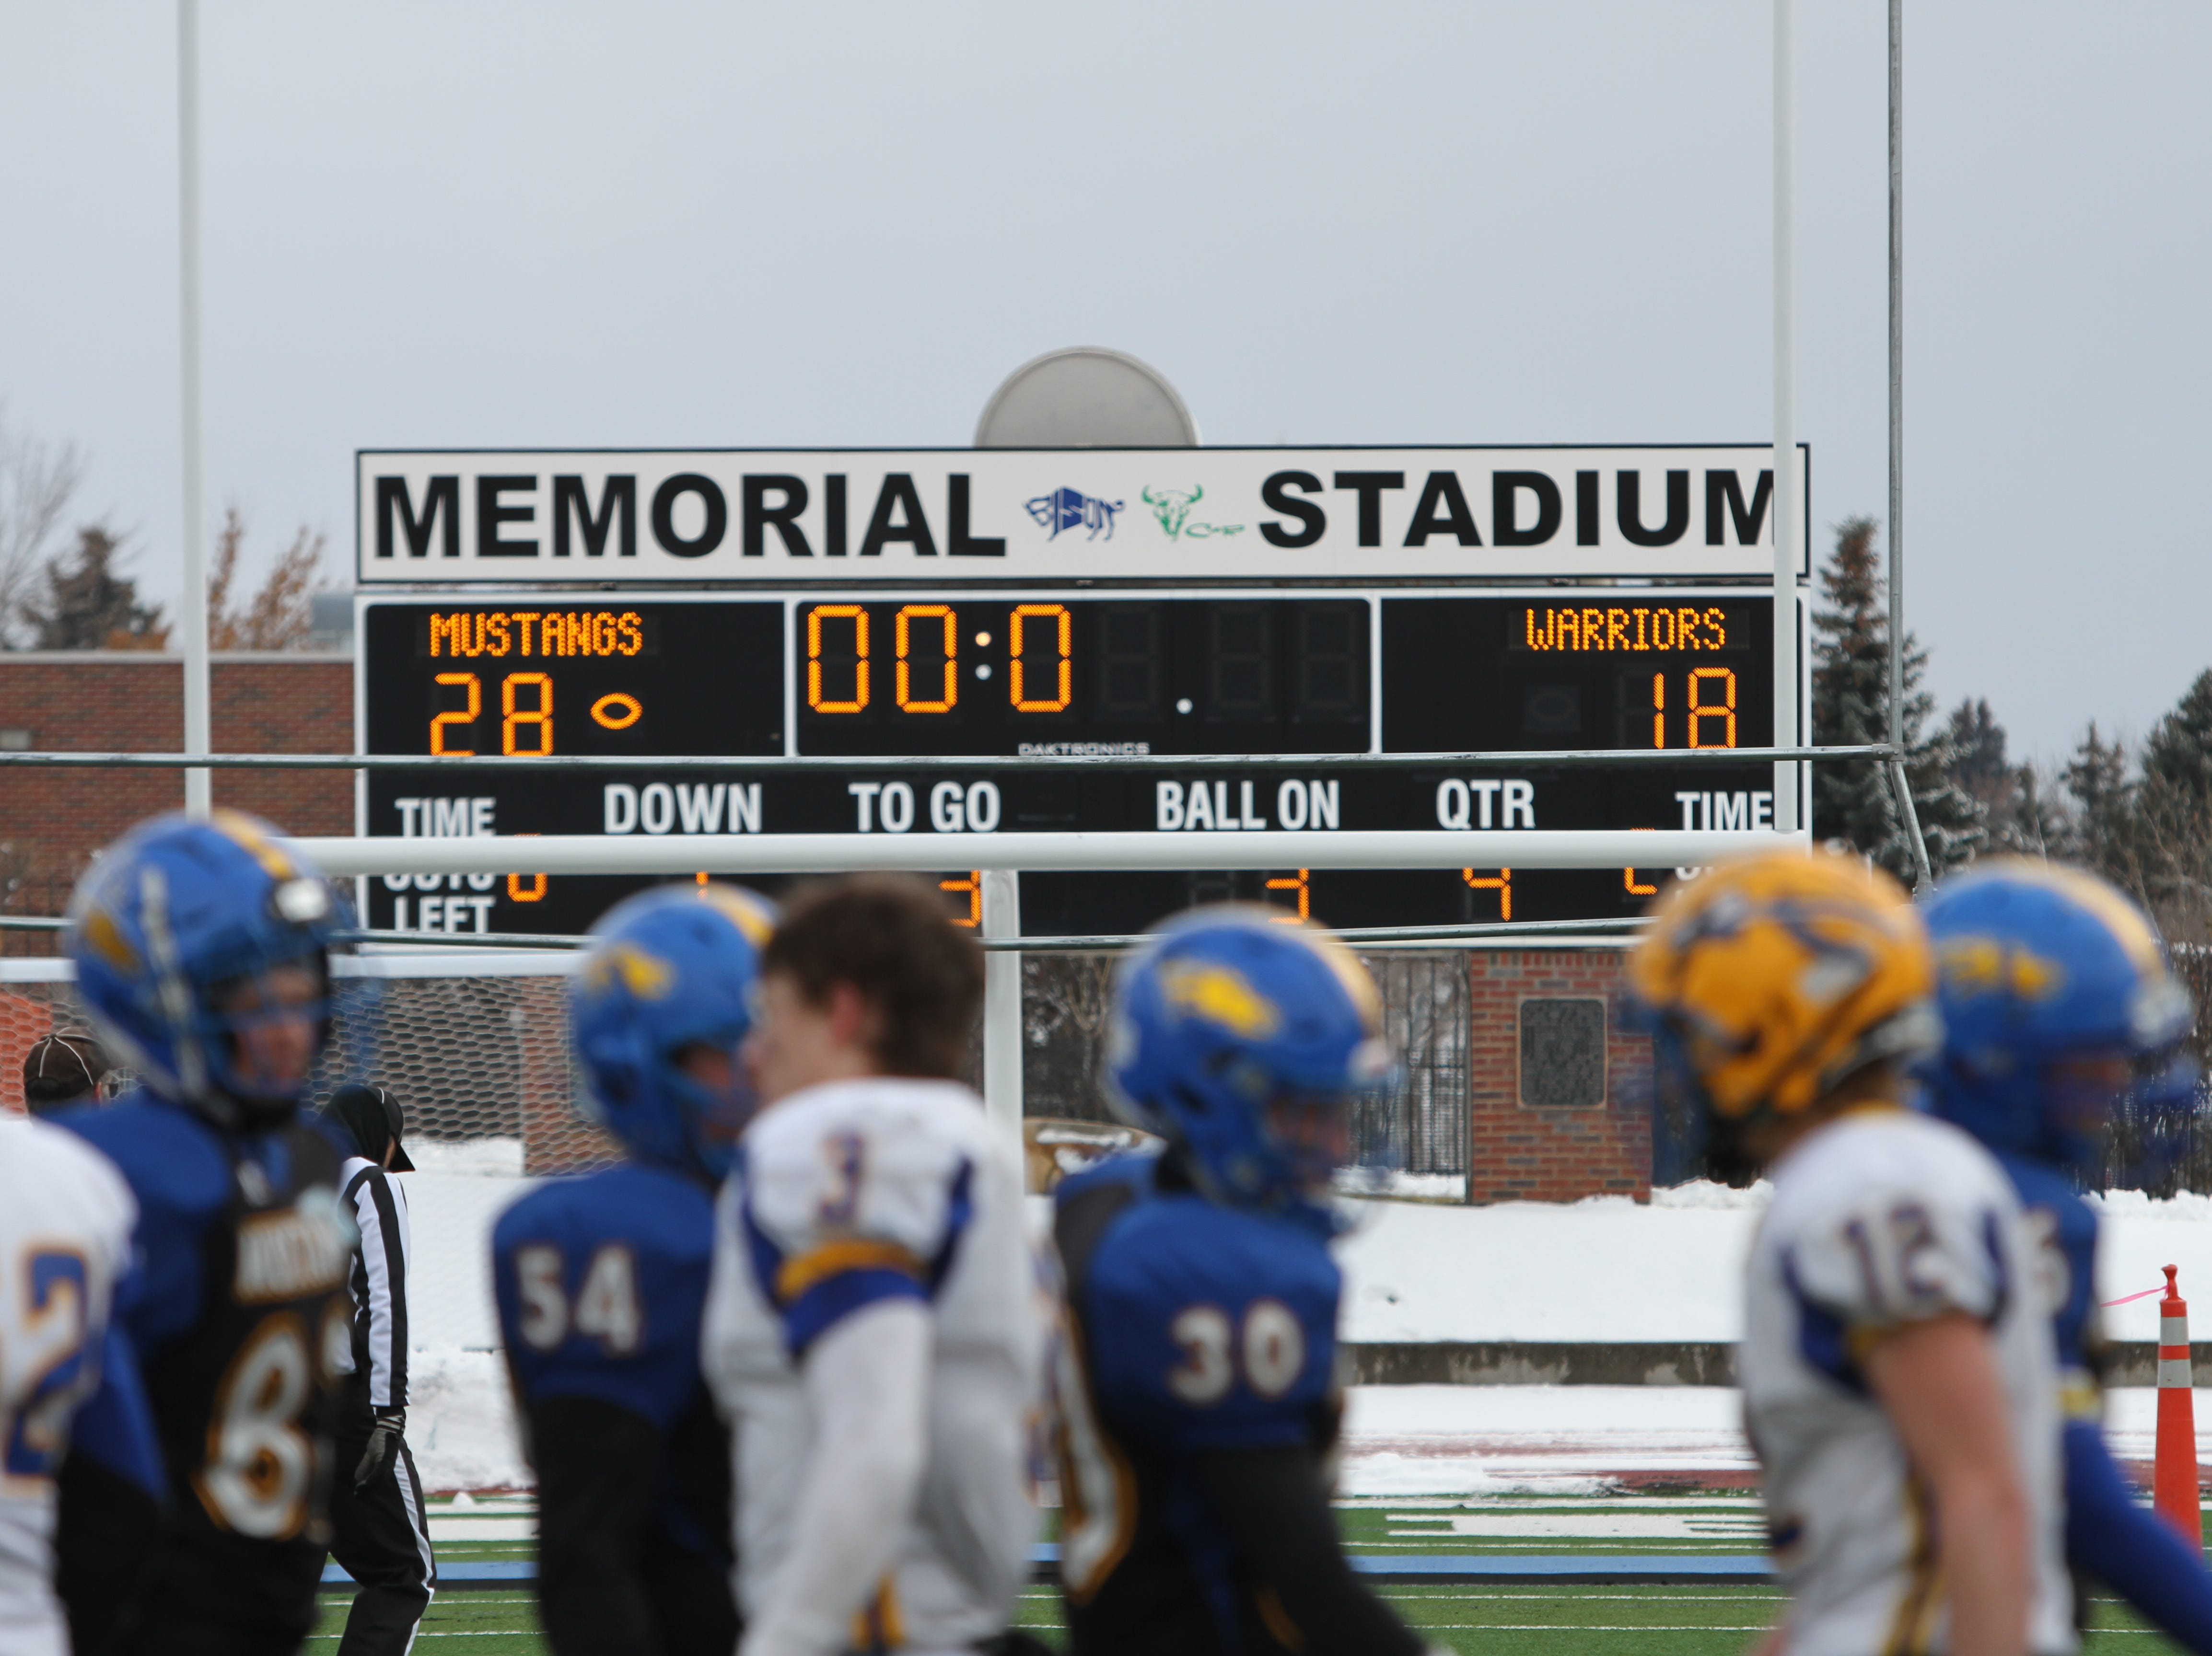 Greats Falls Central played host to Fairview in 8-man Football State Semifinals Saturday at Memorial Stadium